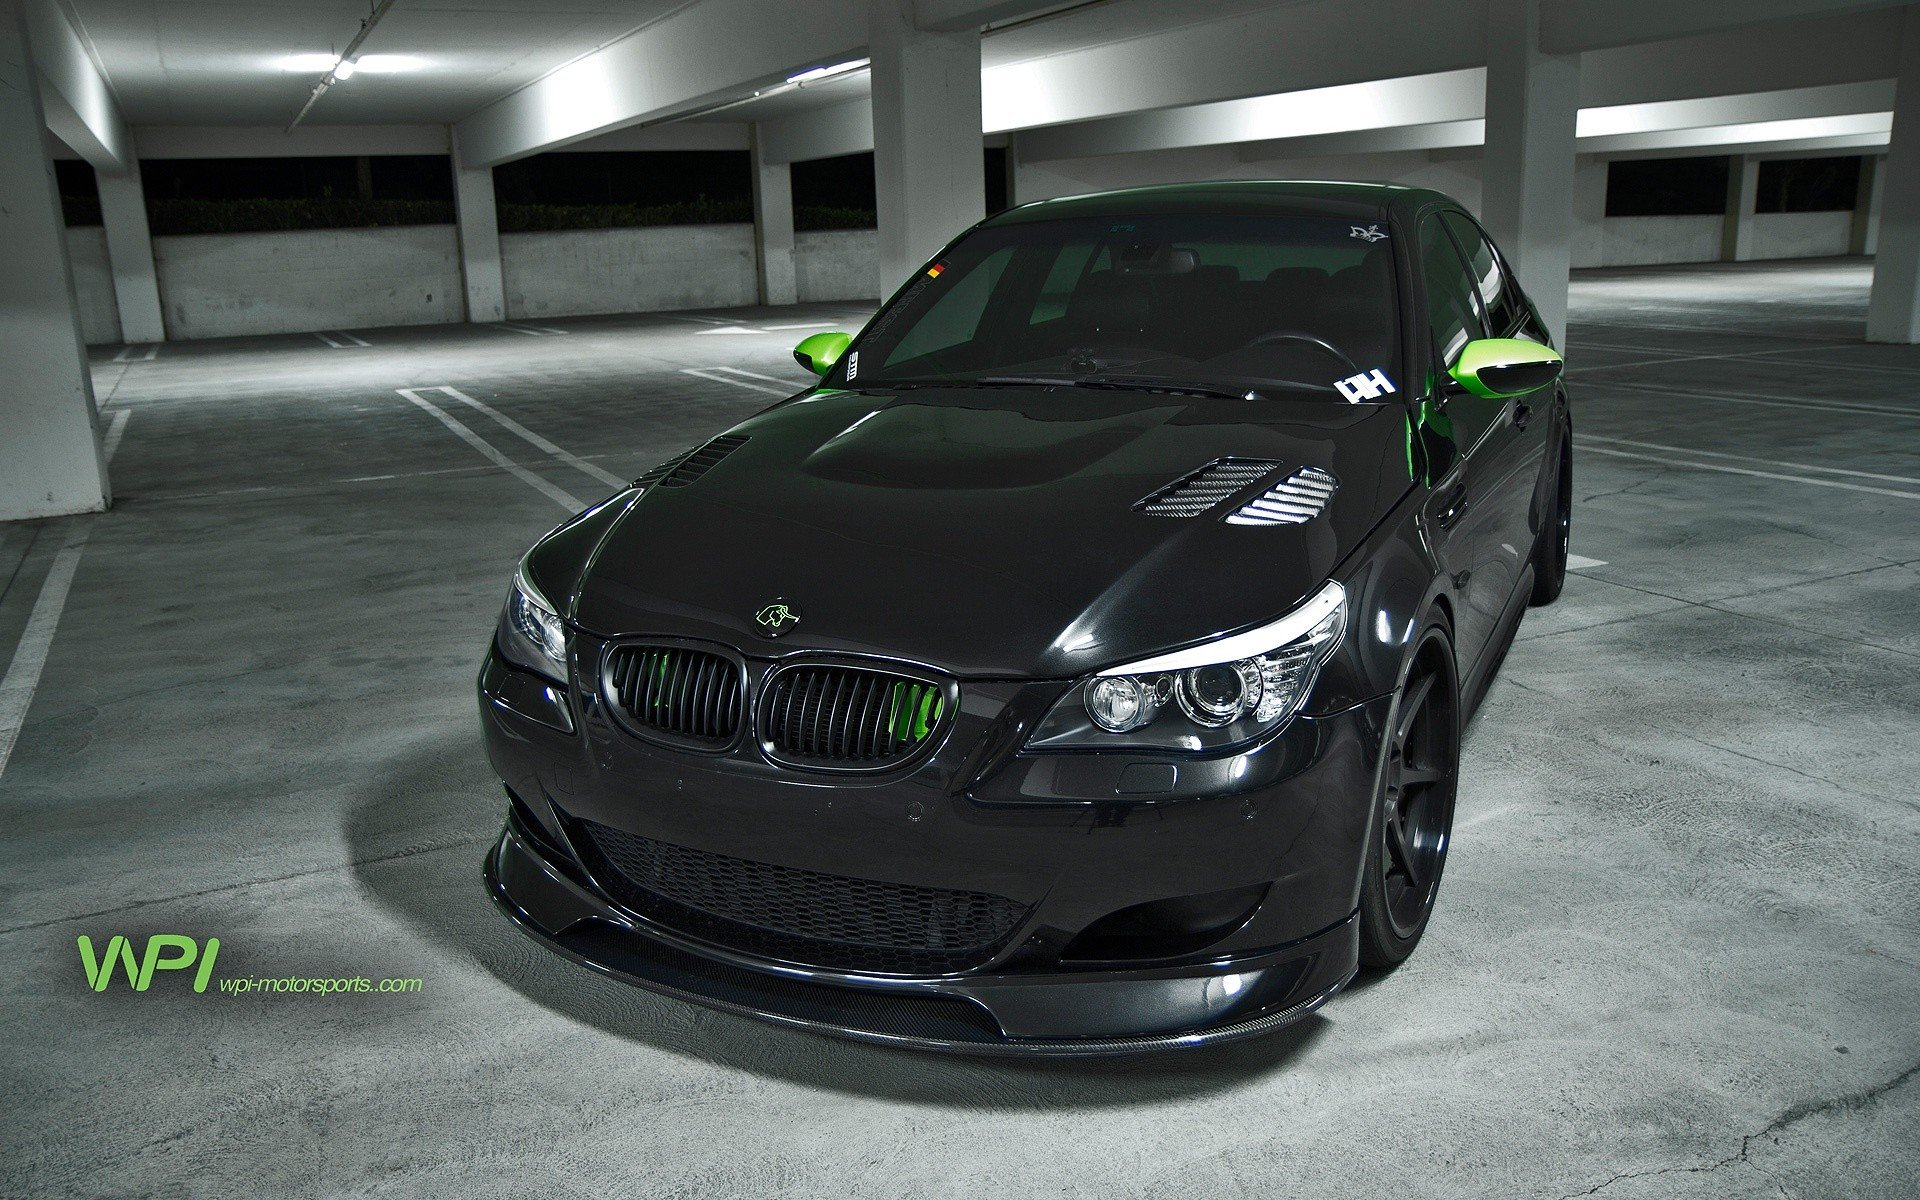 Luxury Sports Cars >> Black cars parking vehicles tuning wheels BMW M5 sports cars luxury sport cars BMW E60 speed ...